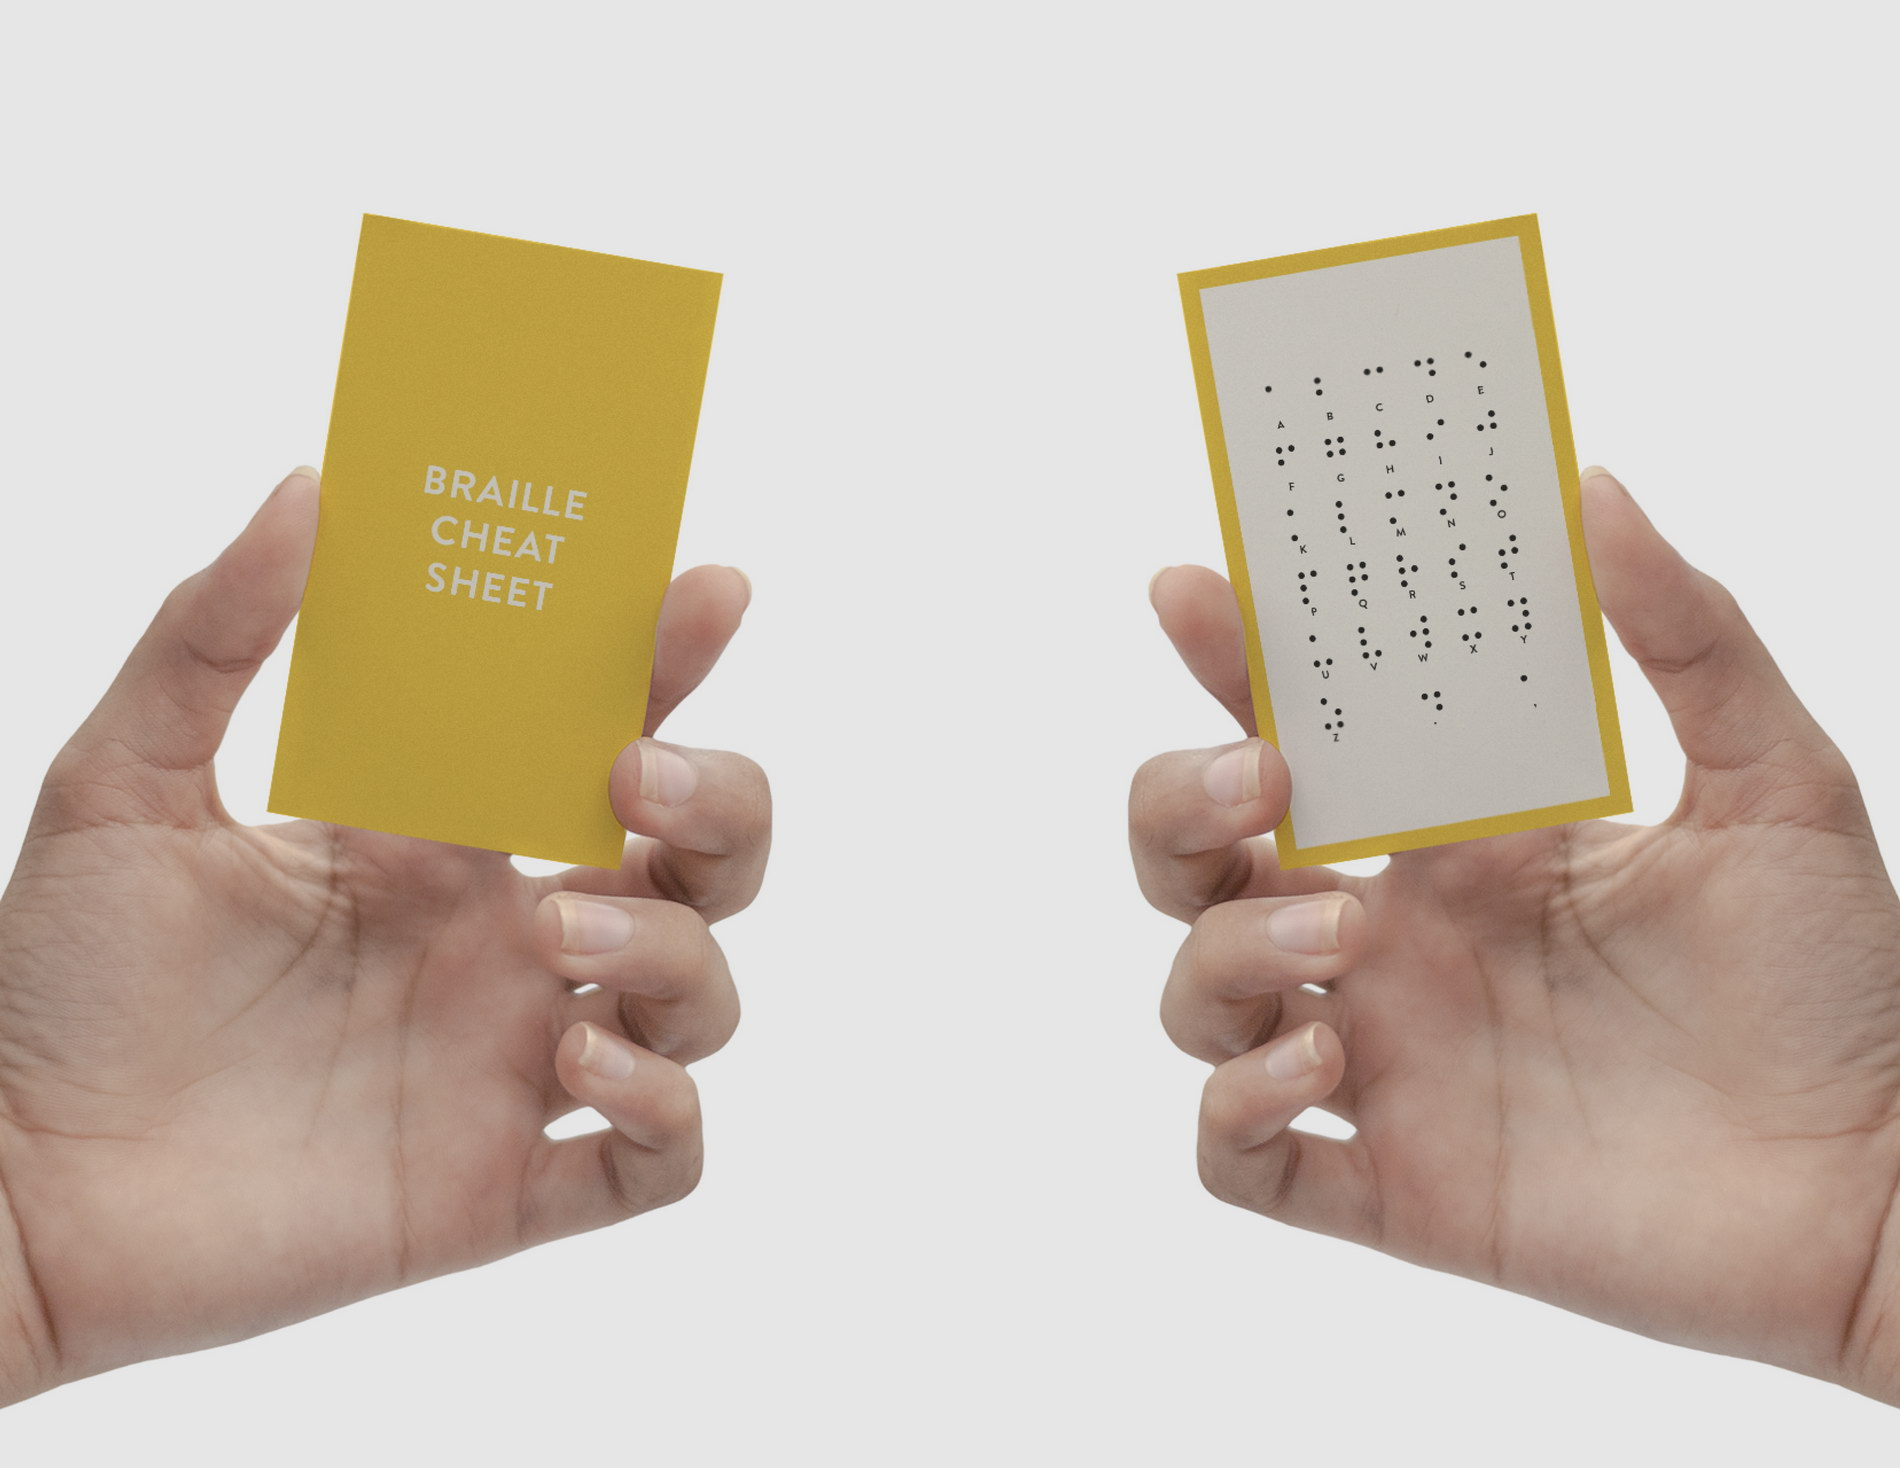 haluka-yagi--annual-report-design--braille-literacy-canada5.jpg